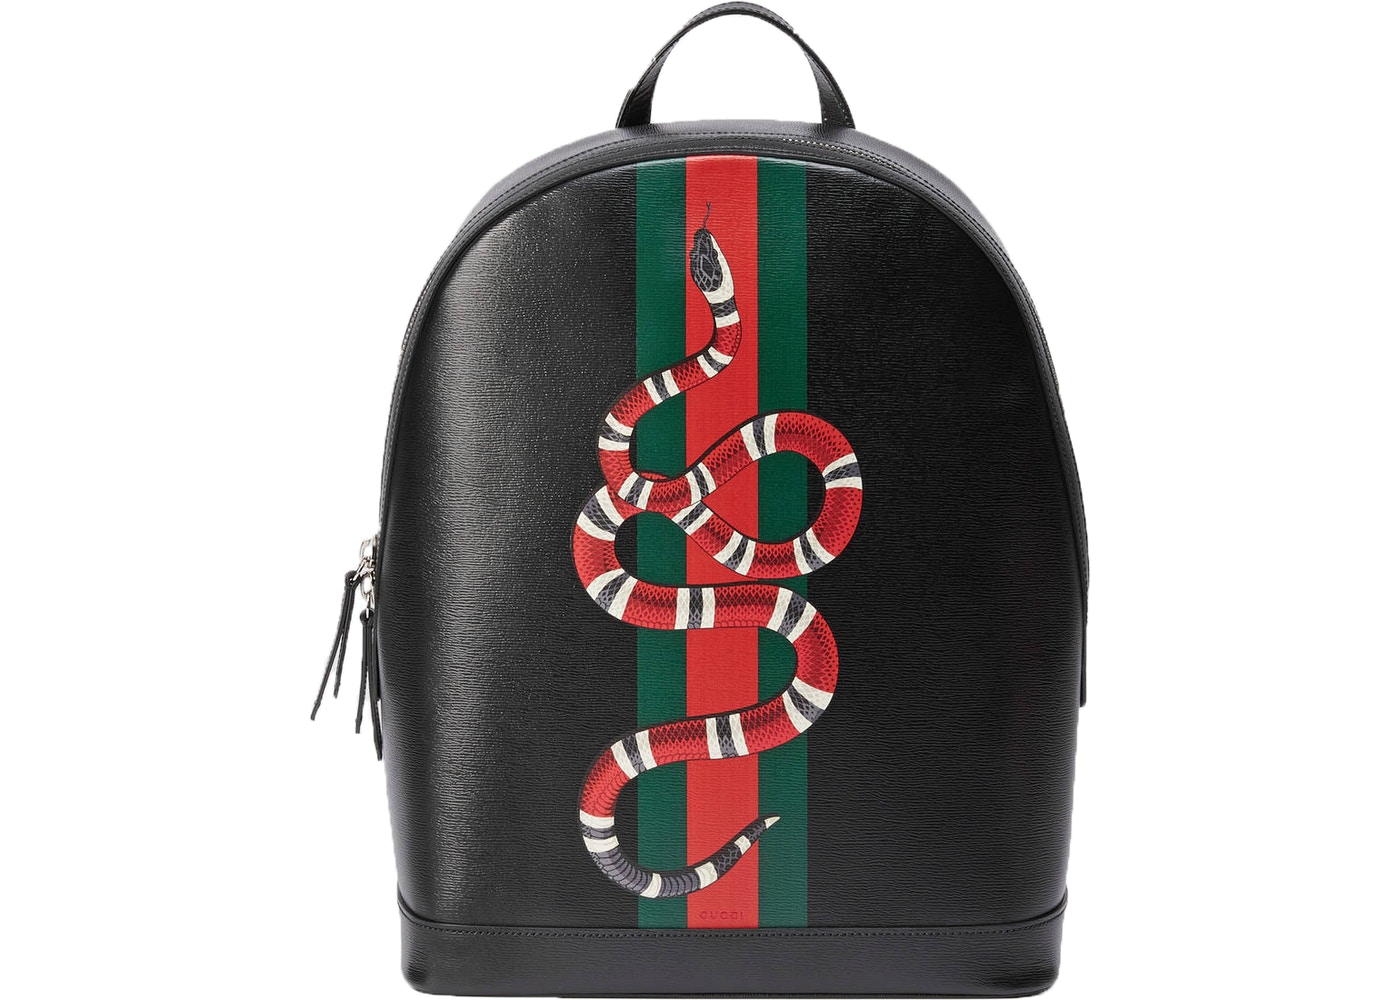 f8d3605e4dde Gucci Web and Kingsnake Backpack Black. Black